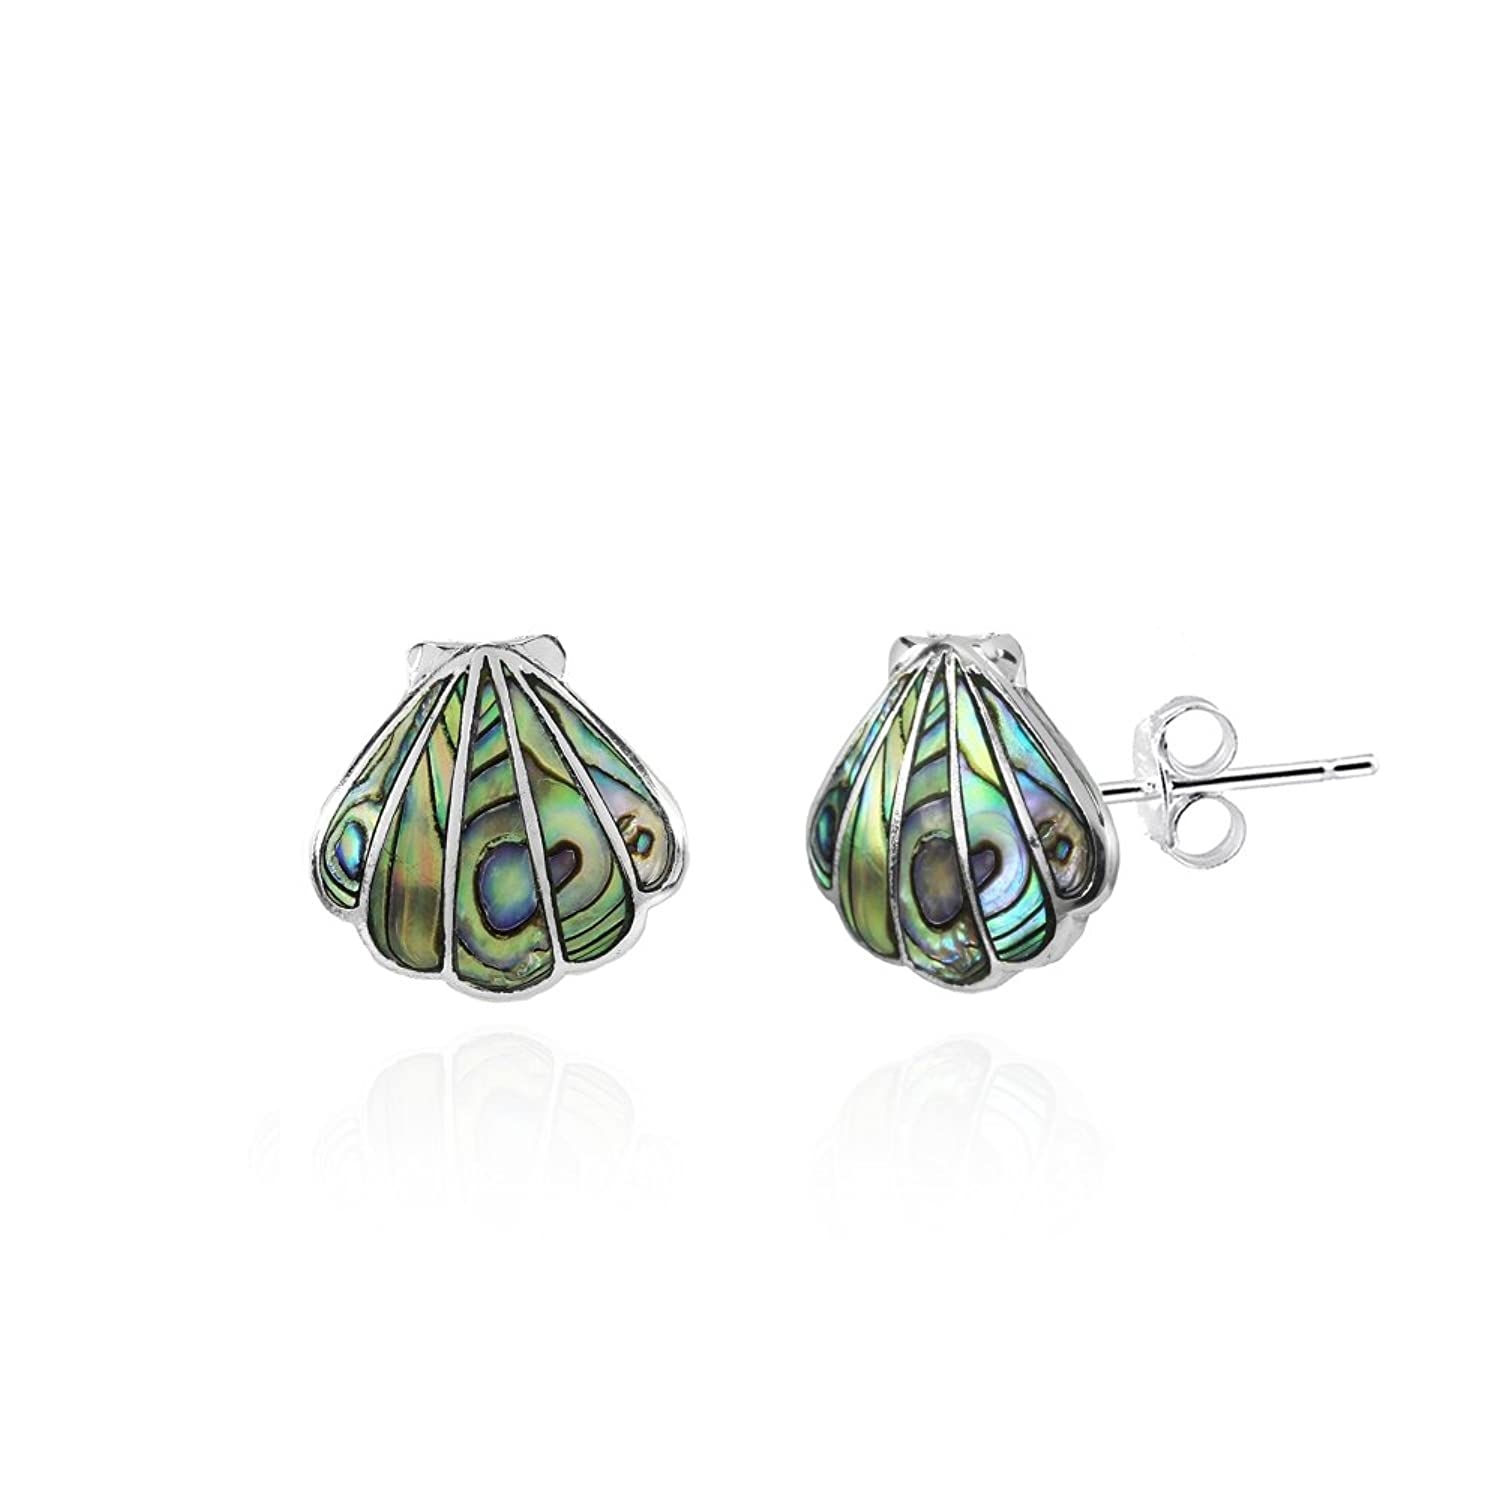 shell fullxfull il stud abalone p surgical steel earrings on posts